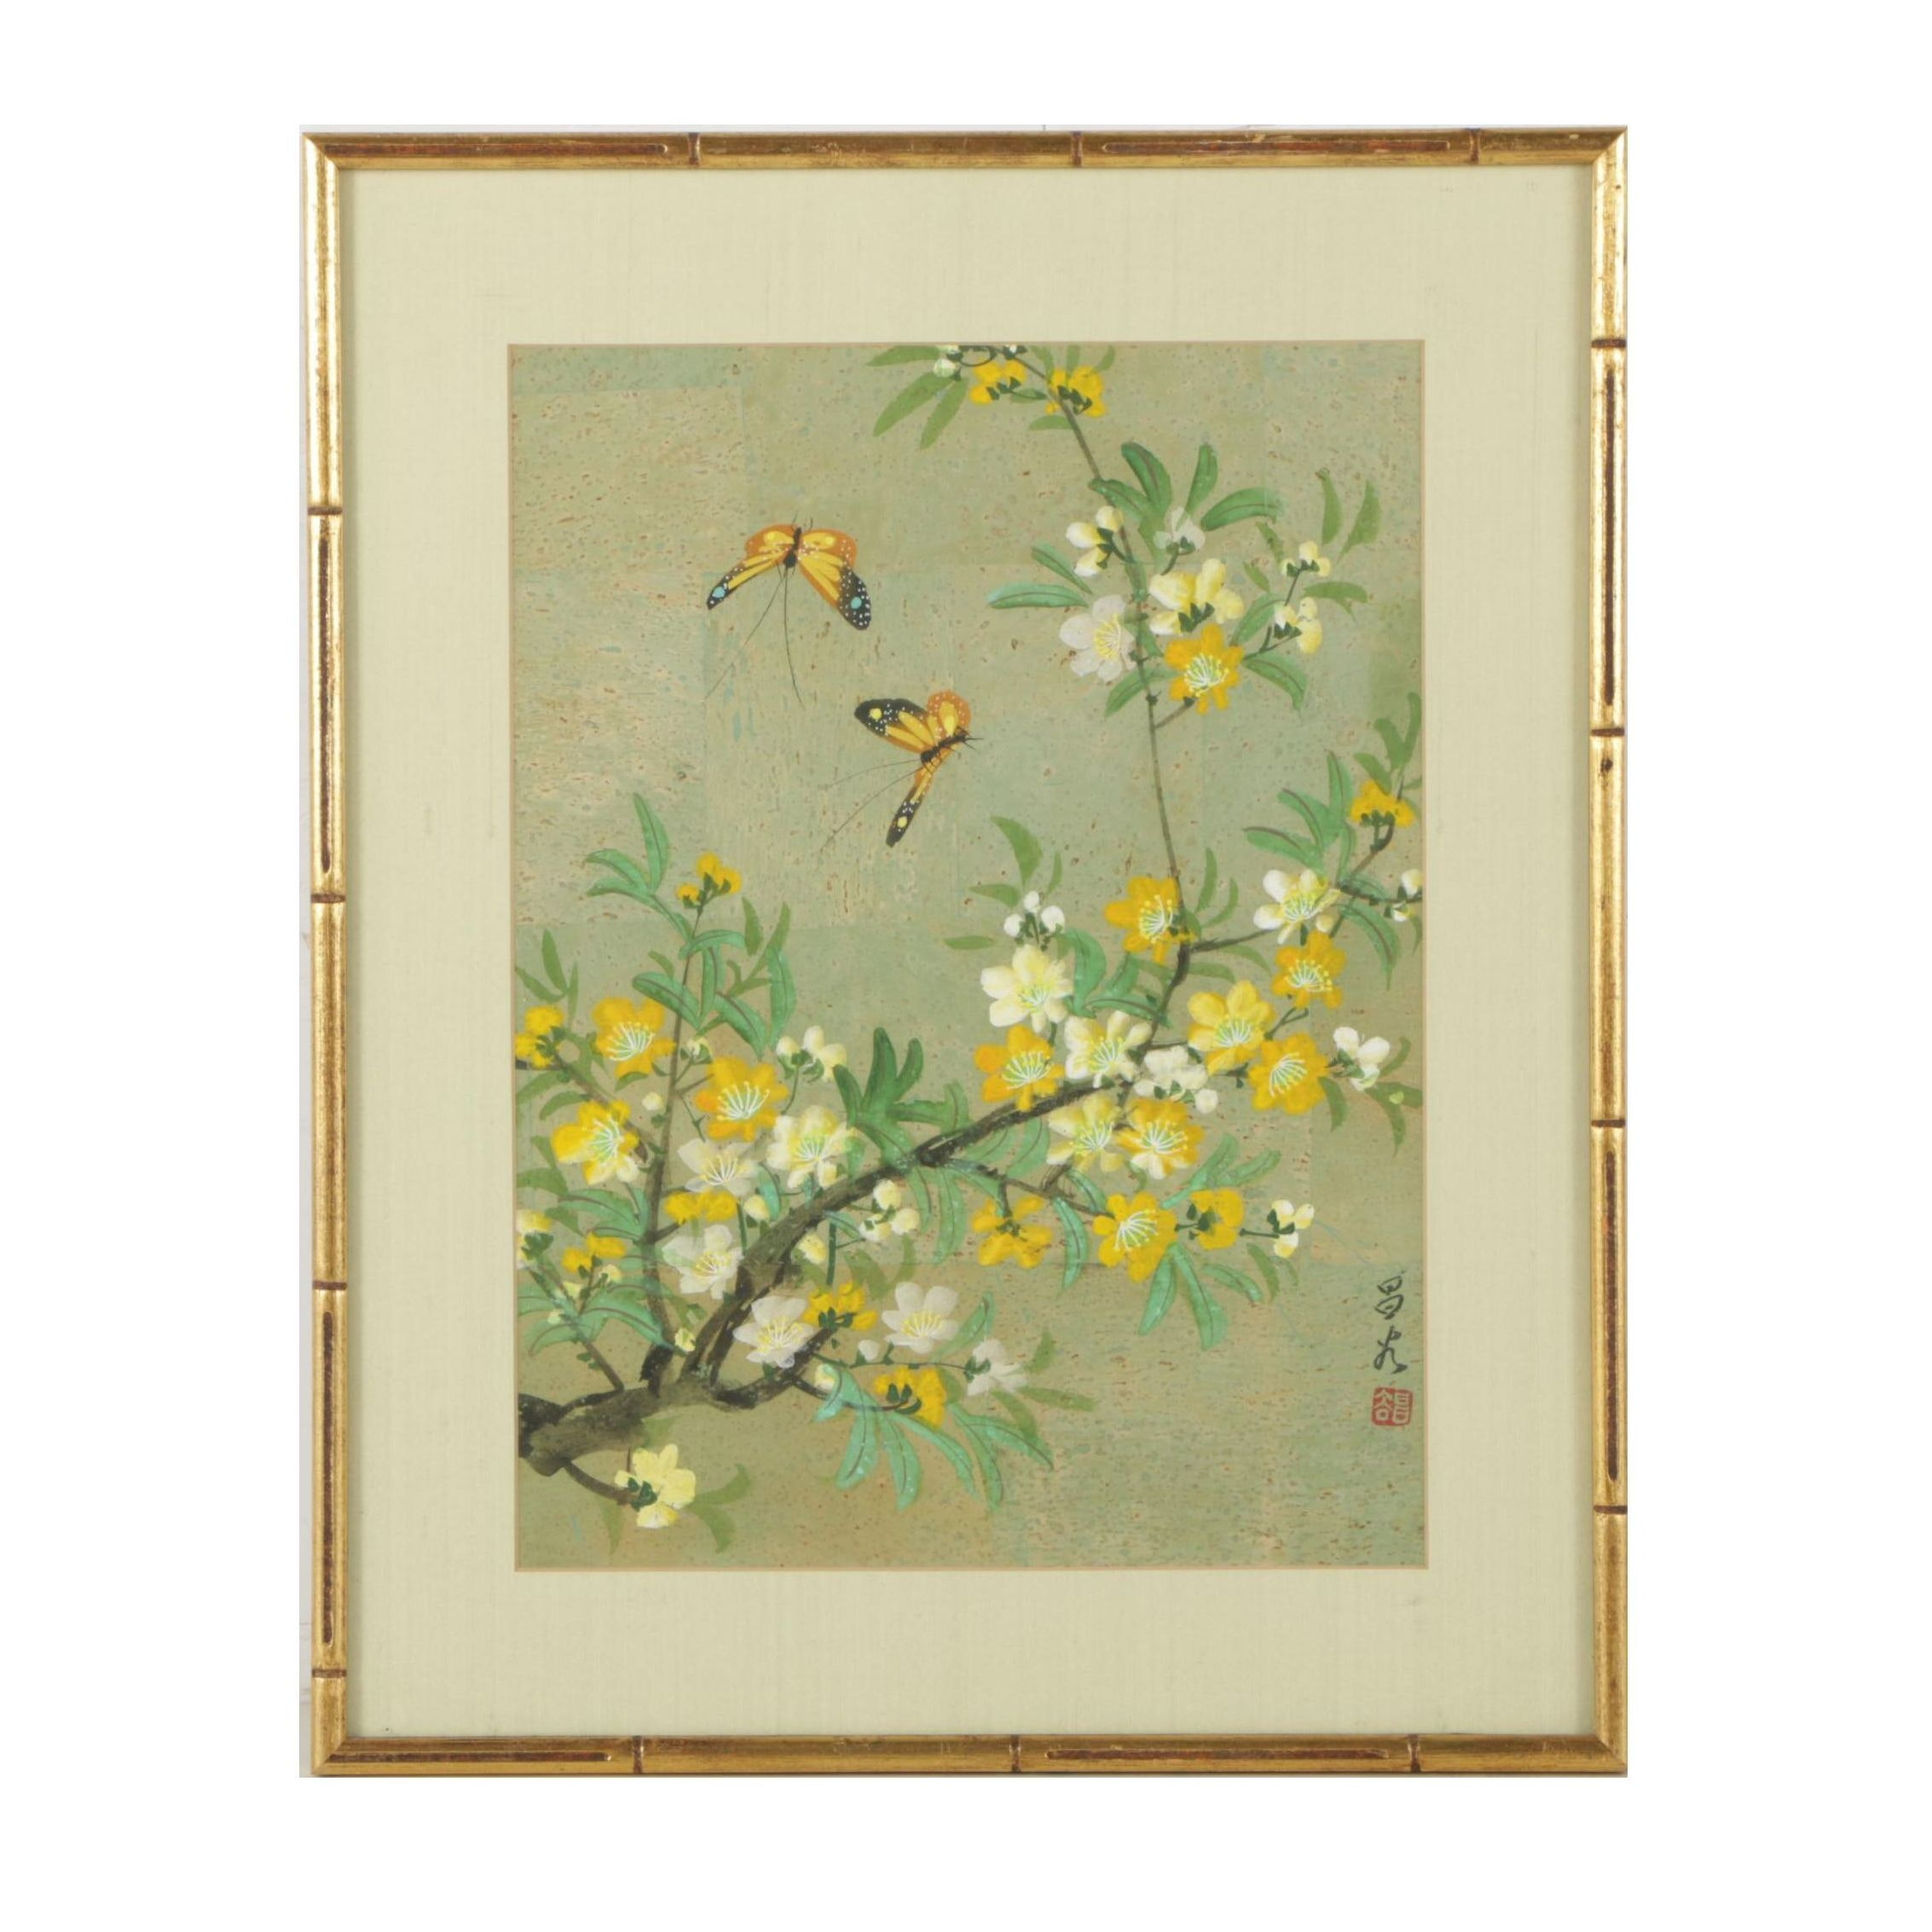 Chinese Gouache Painting of Butterflies and Flowering Tree